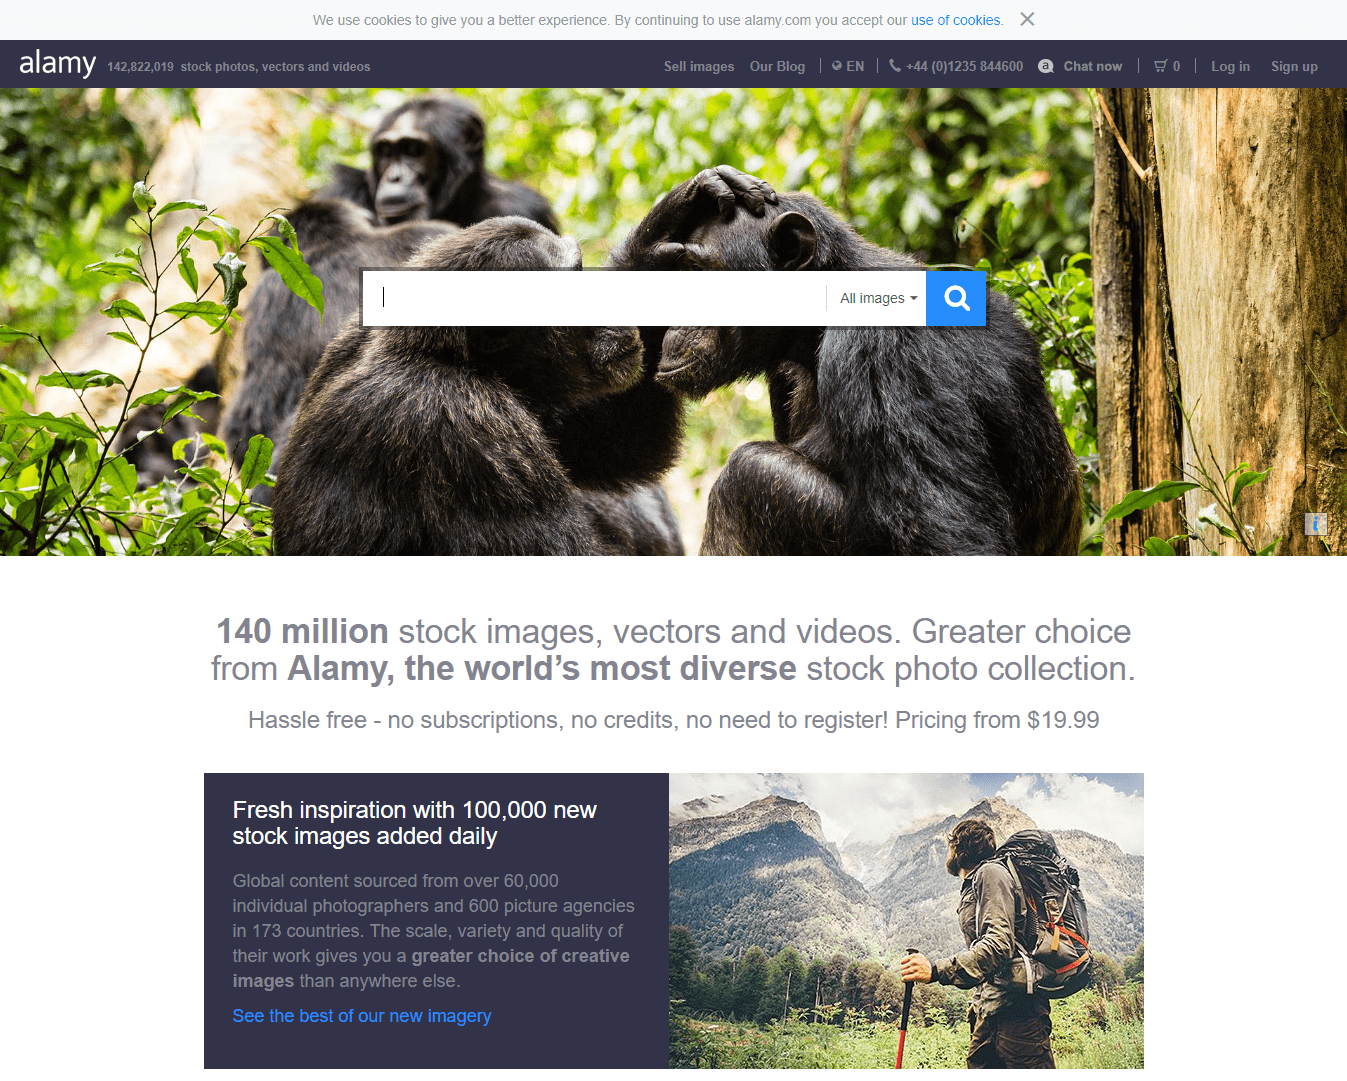 alamy-homepage-screenshot